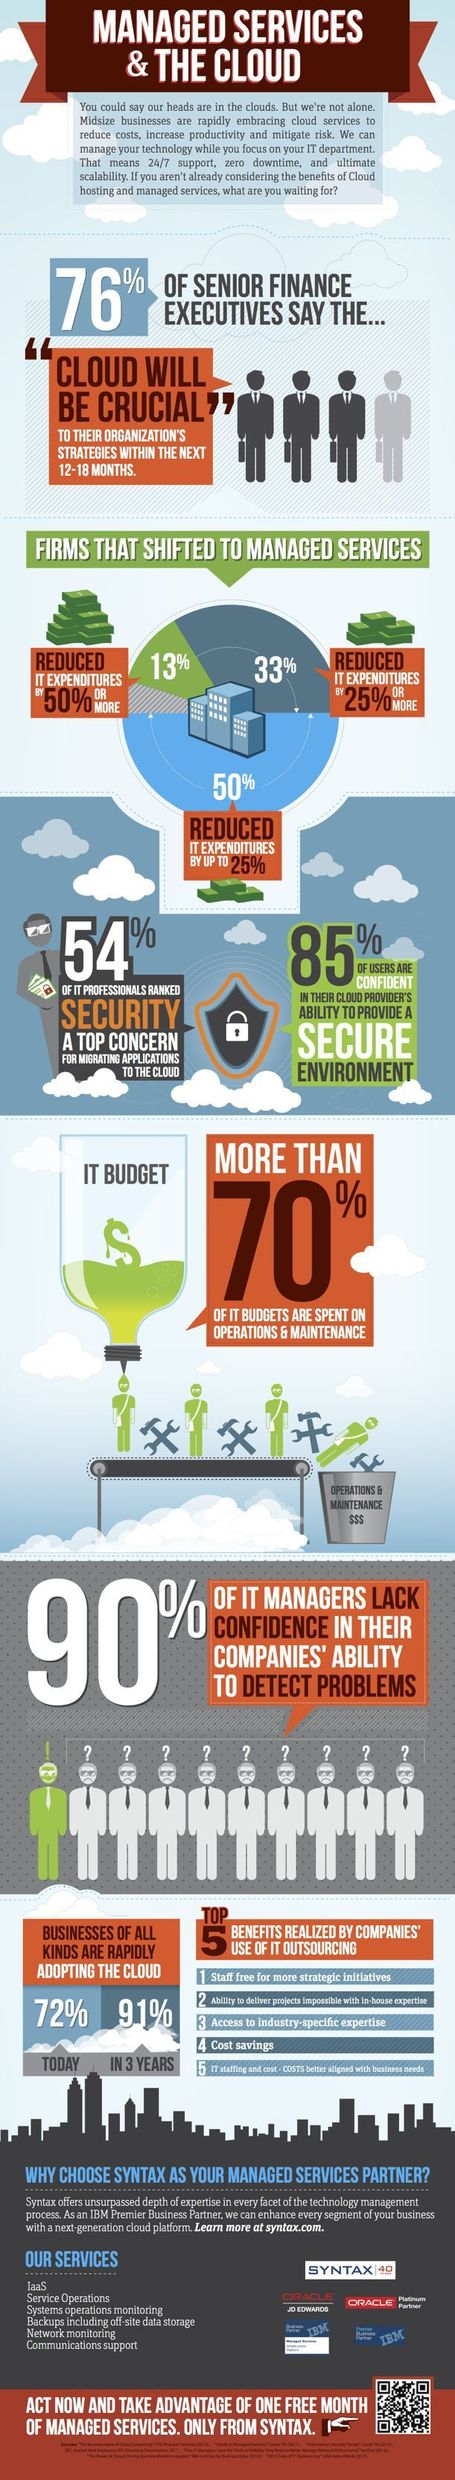 INFOGRAPHIC: Managed Services & The Cloud | Future of Cloud Computing | Scoop.it